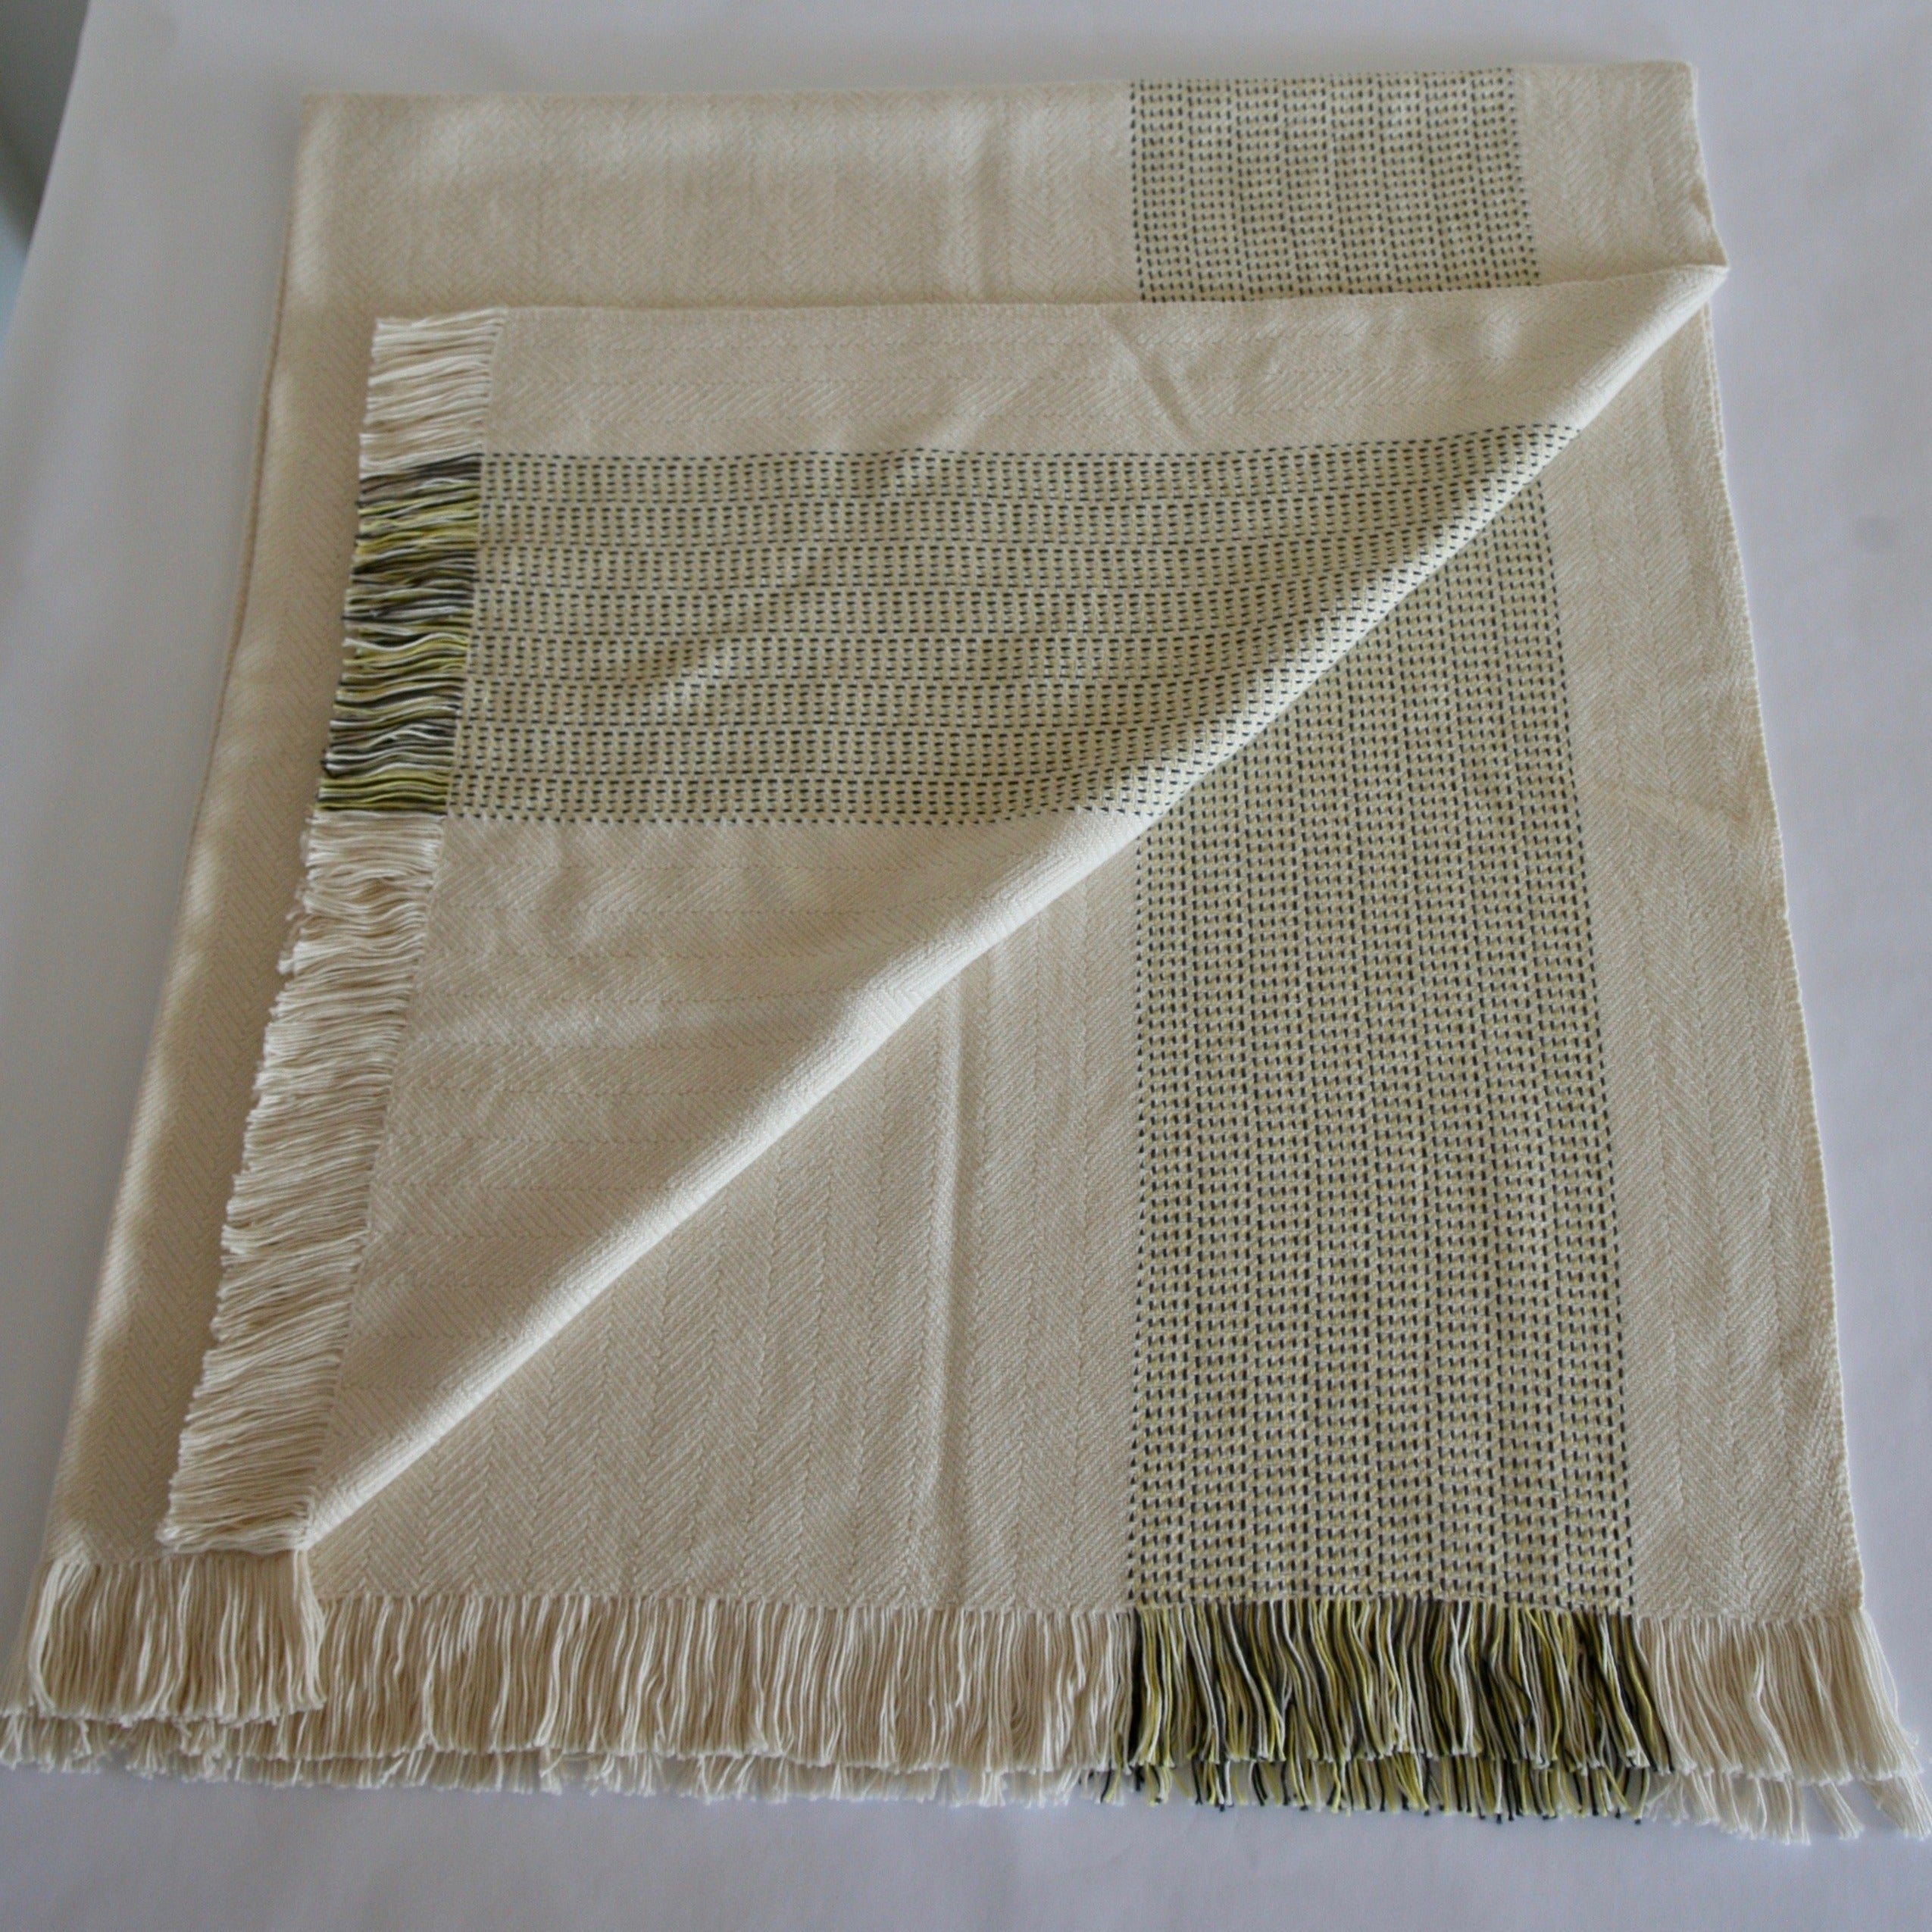 Organic Cotton Blanket- Natural with Lemon Yellow Panels